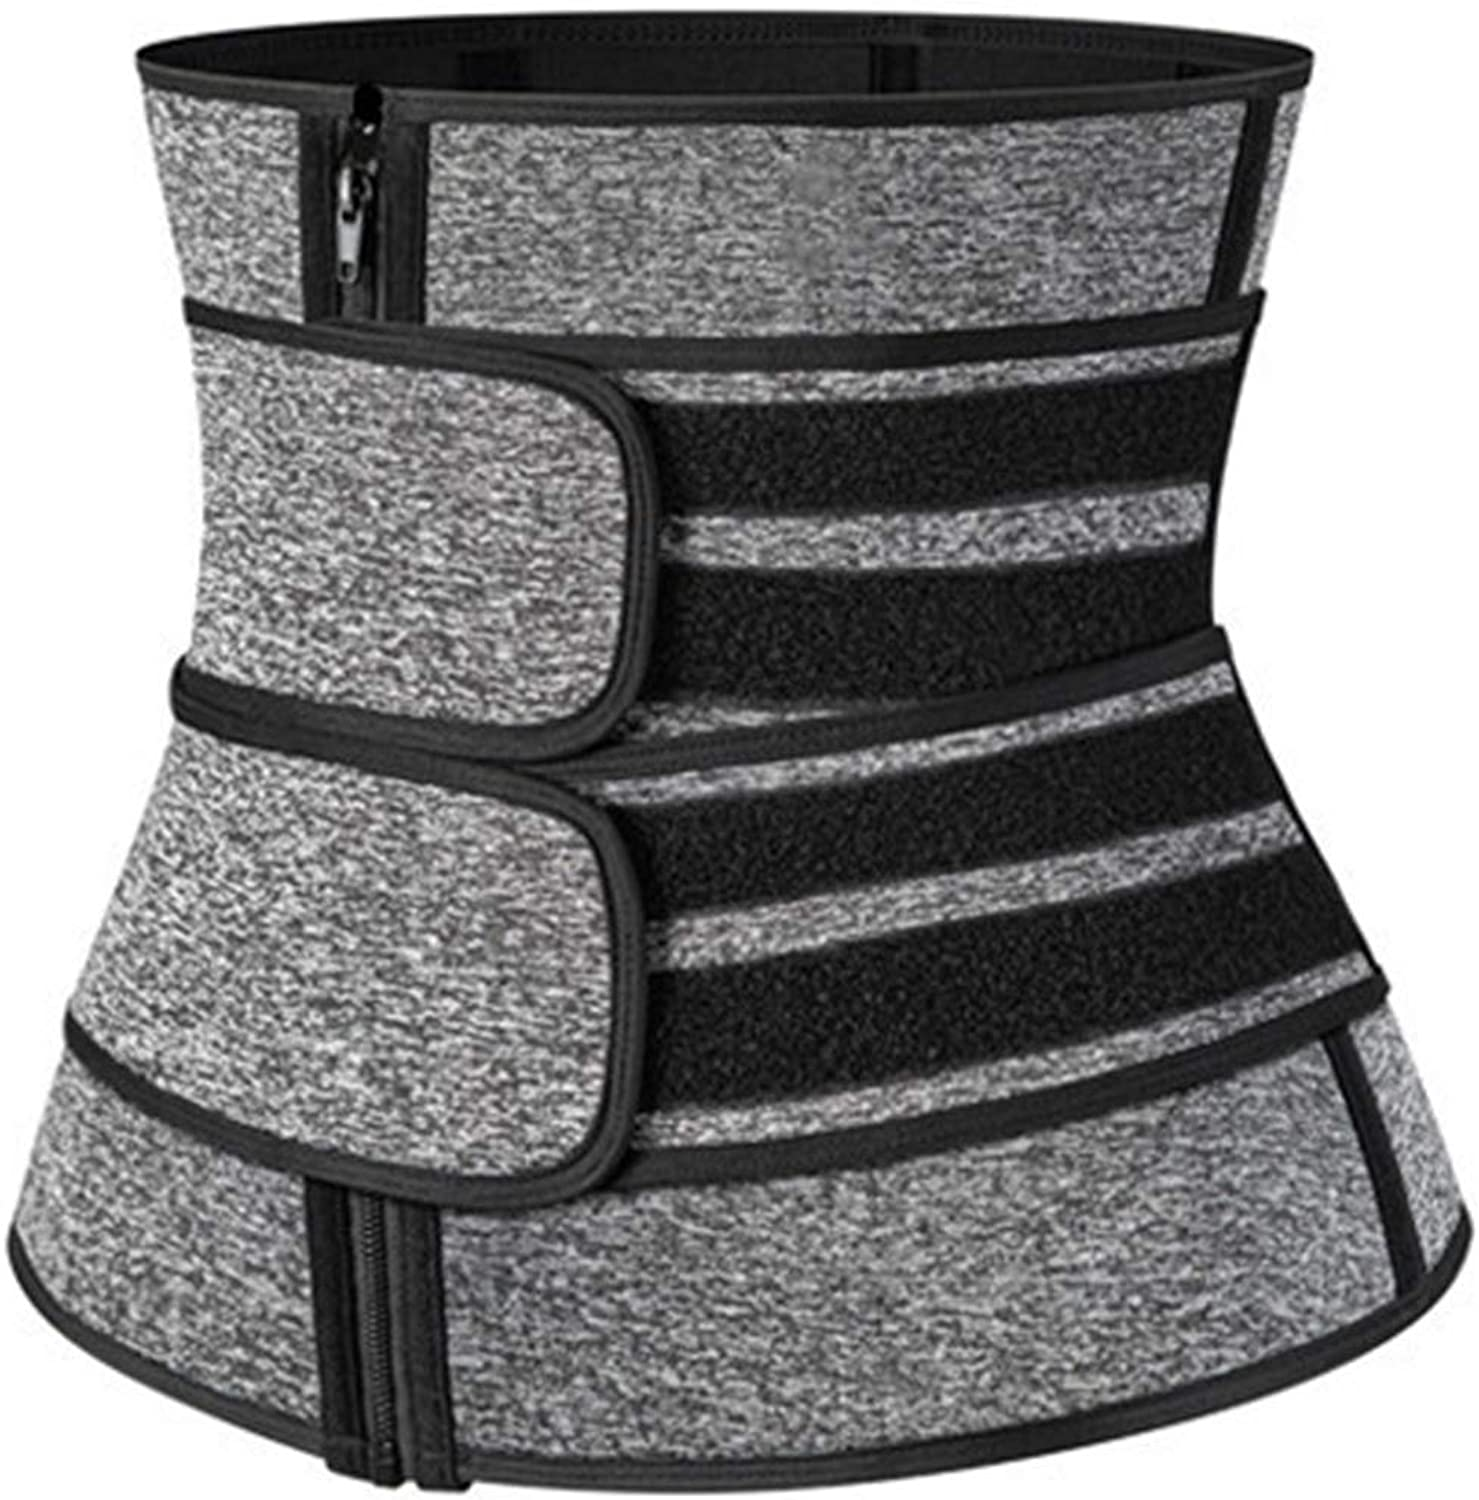 Actloe Womens Corset Waist Trainer for Weight Loss Slimming Body Shaper Sports